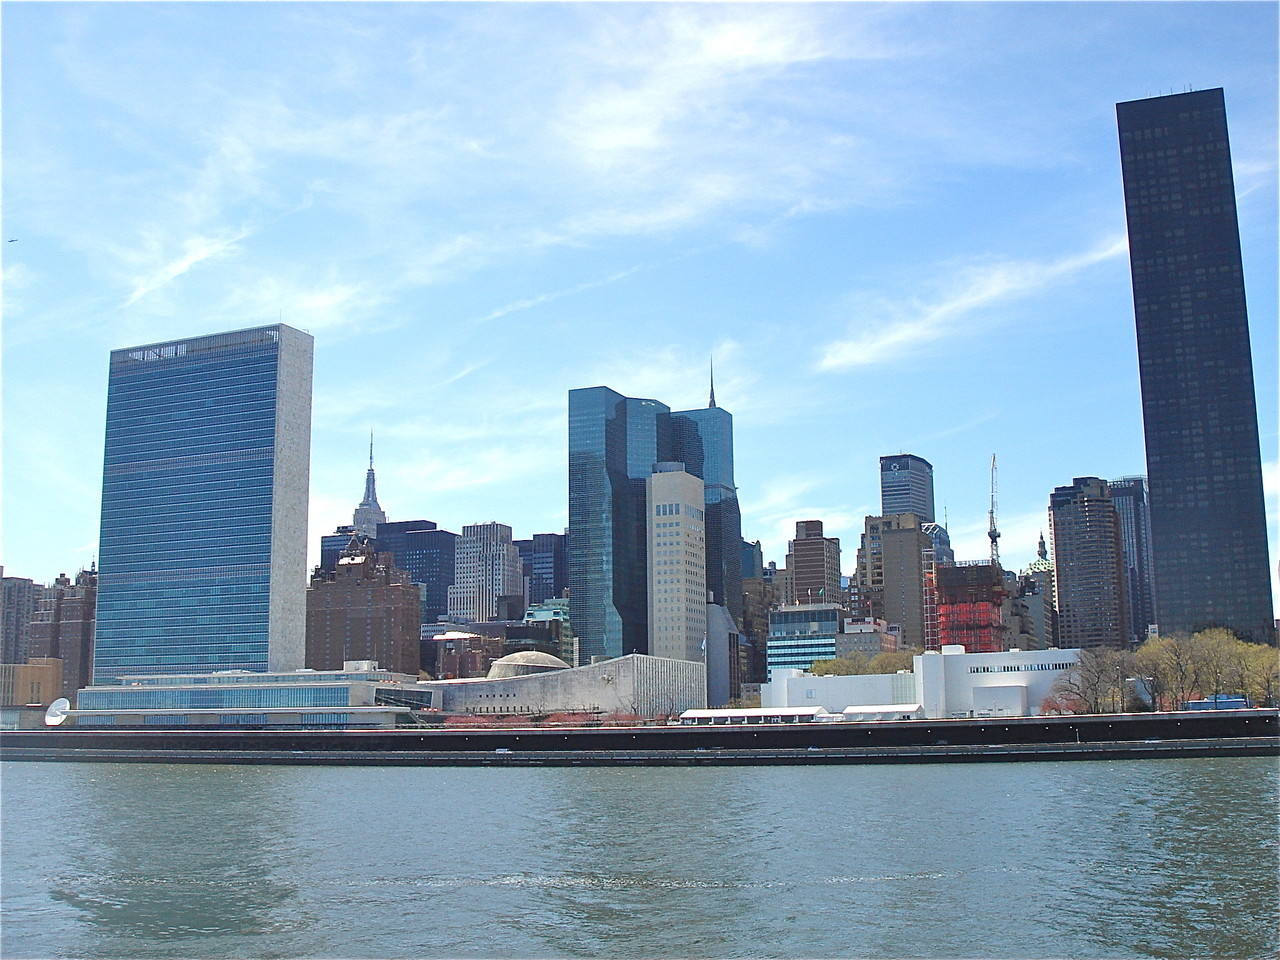 The UN and East River, 4-21-2013